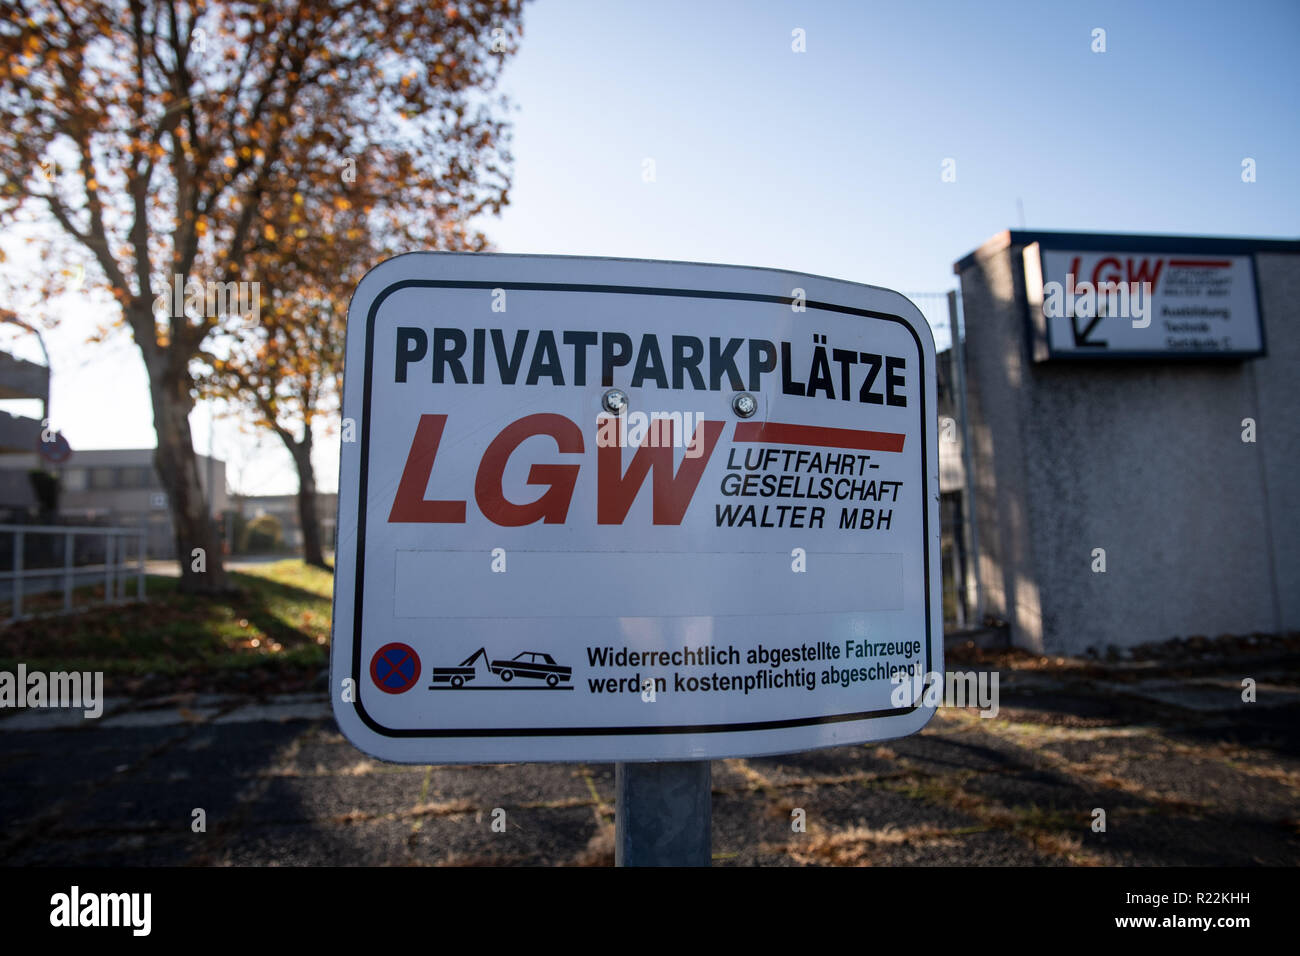 Dortmund, Germany. 16th Nov, 2018. The logo of Luftfahrtgesellschaft Walter (LGW) stands on a parking sign at a building of Dortmund Airport. One day after a general strike threat for the flight attendants of the Eurowings core company, the trade union verdi focuses on the aviation company Walter (LGW) based in Dortmund, which also flies for Eurowings. Credit: Bernd Thissen/dpa/Alamy Live News - Stock Image